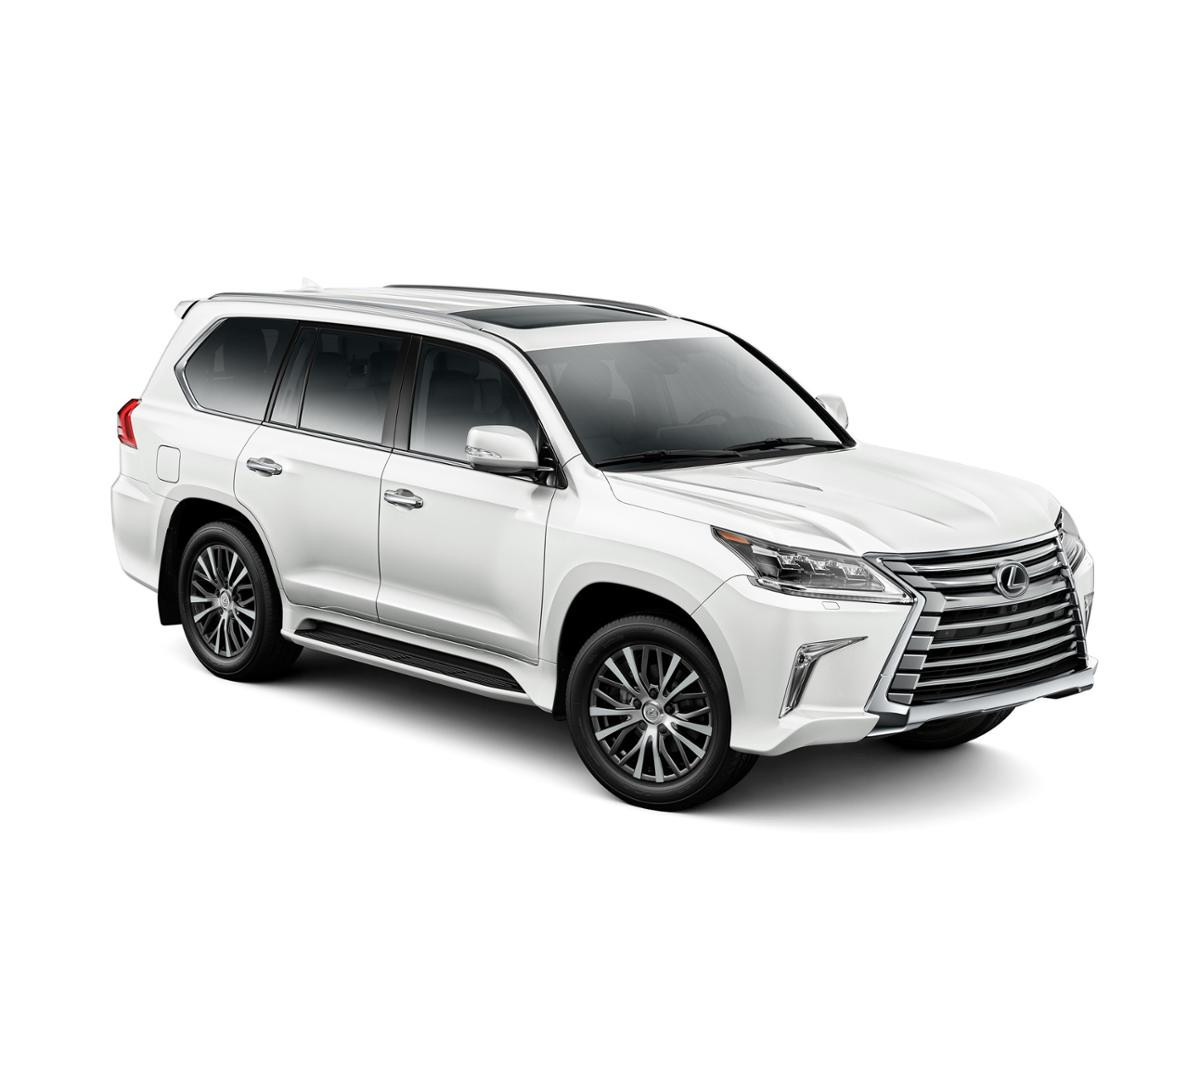 2018 Lexus LX 570 Vehicle Photo in Las Vegas, NV 89146